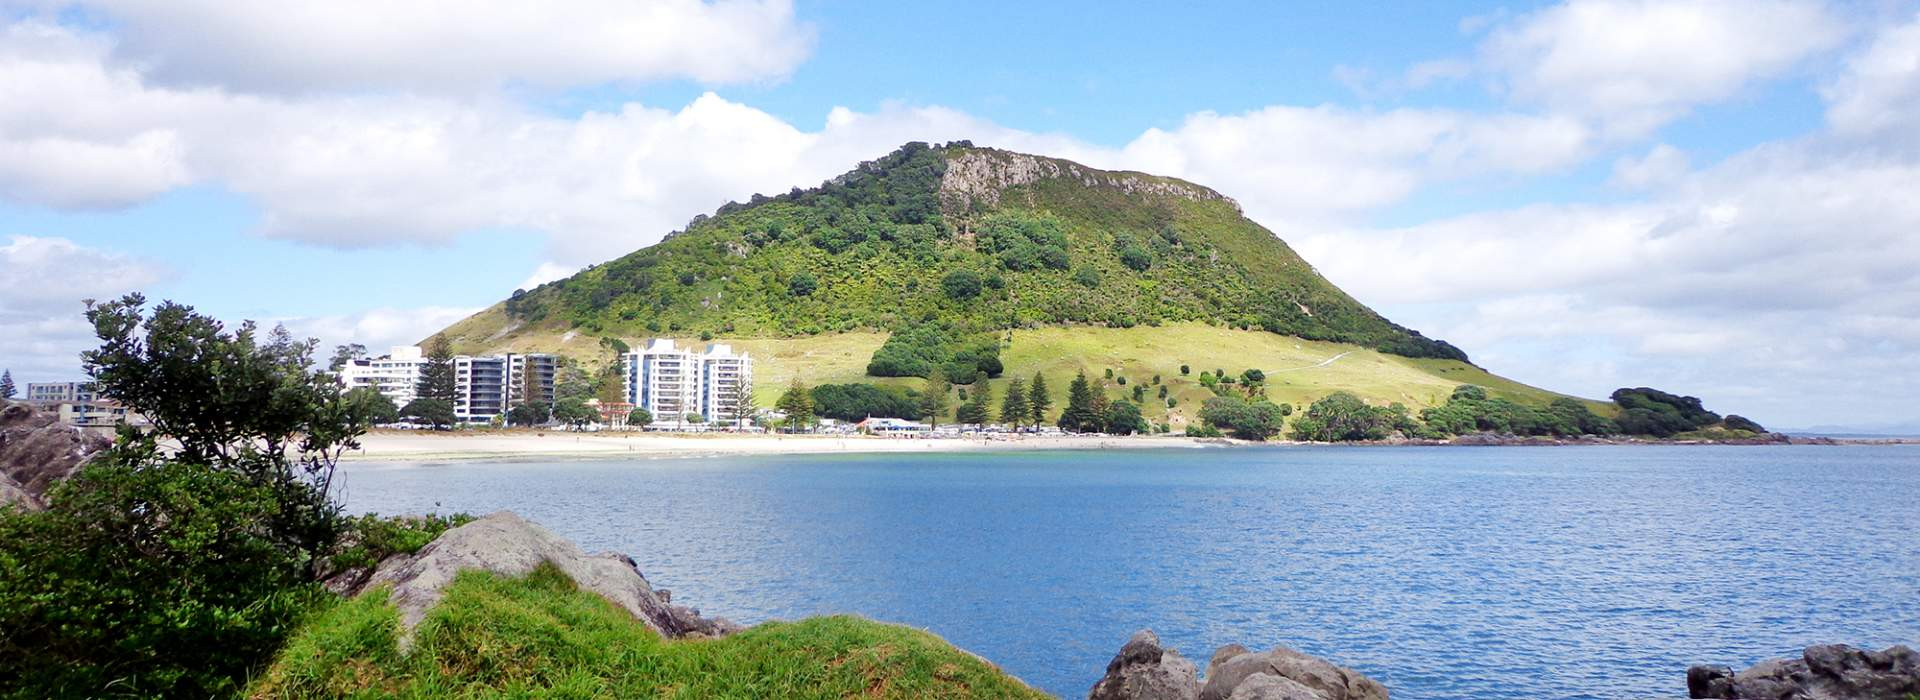 Tesol Course Also Known As Tefl Bay Learning Academy New Zealand